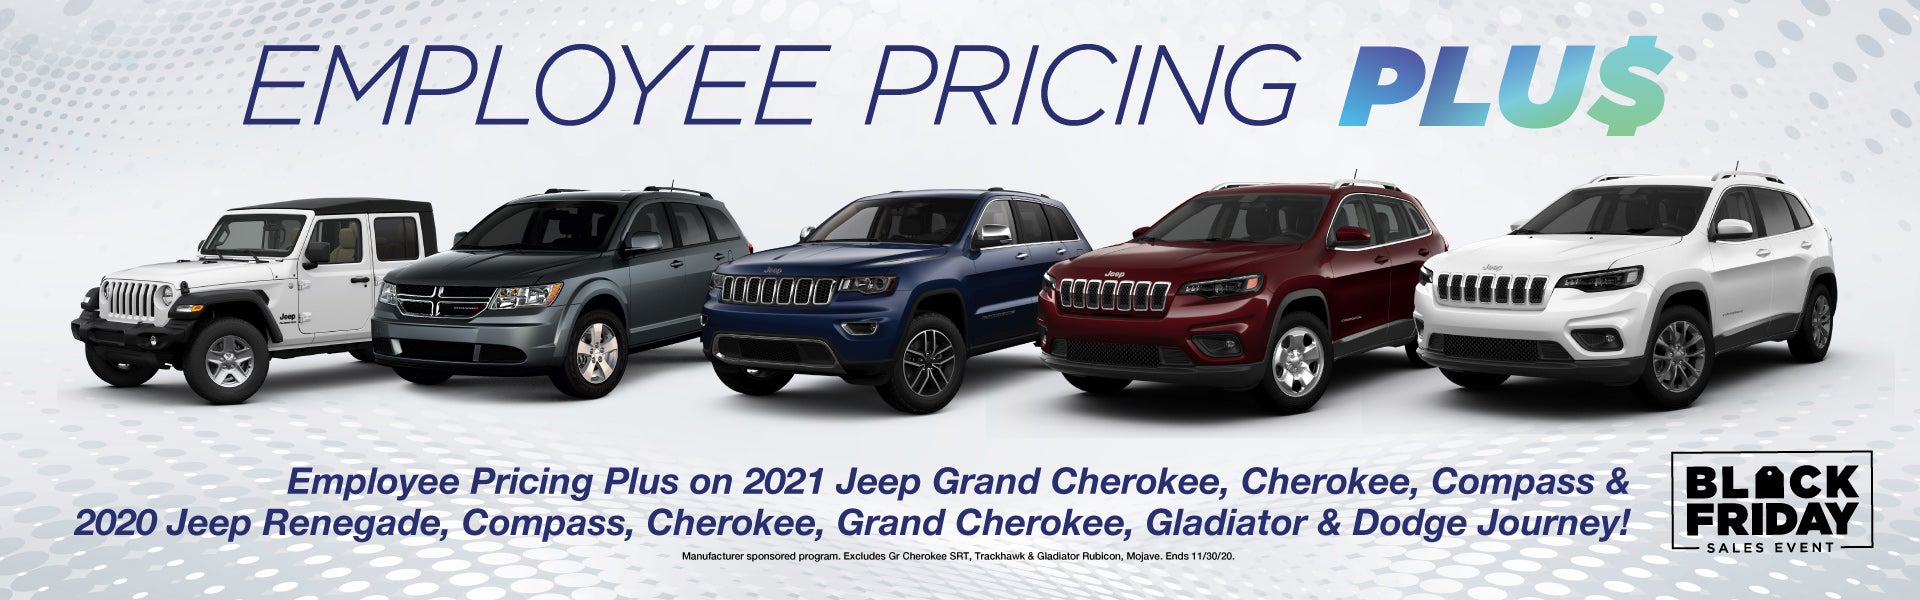 Black Friday Deals On Cars Trucks And Suvs At Grieger S Motor Sales In Valparaiso Indiana